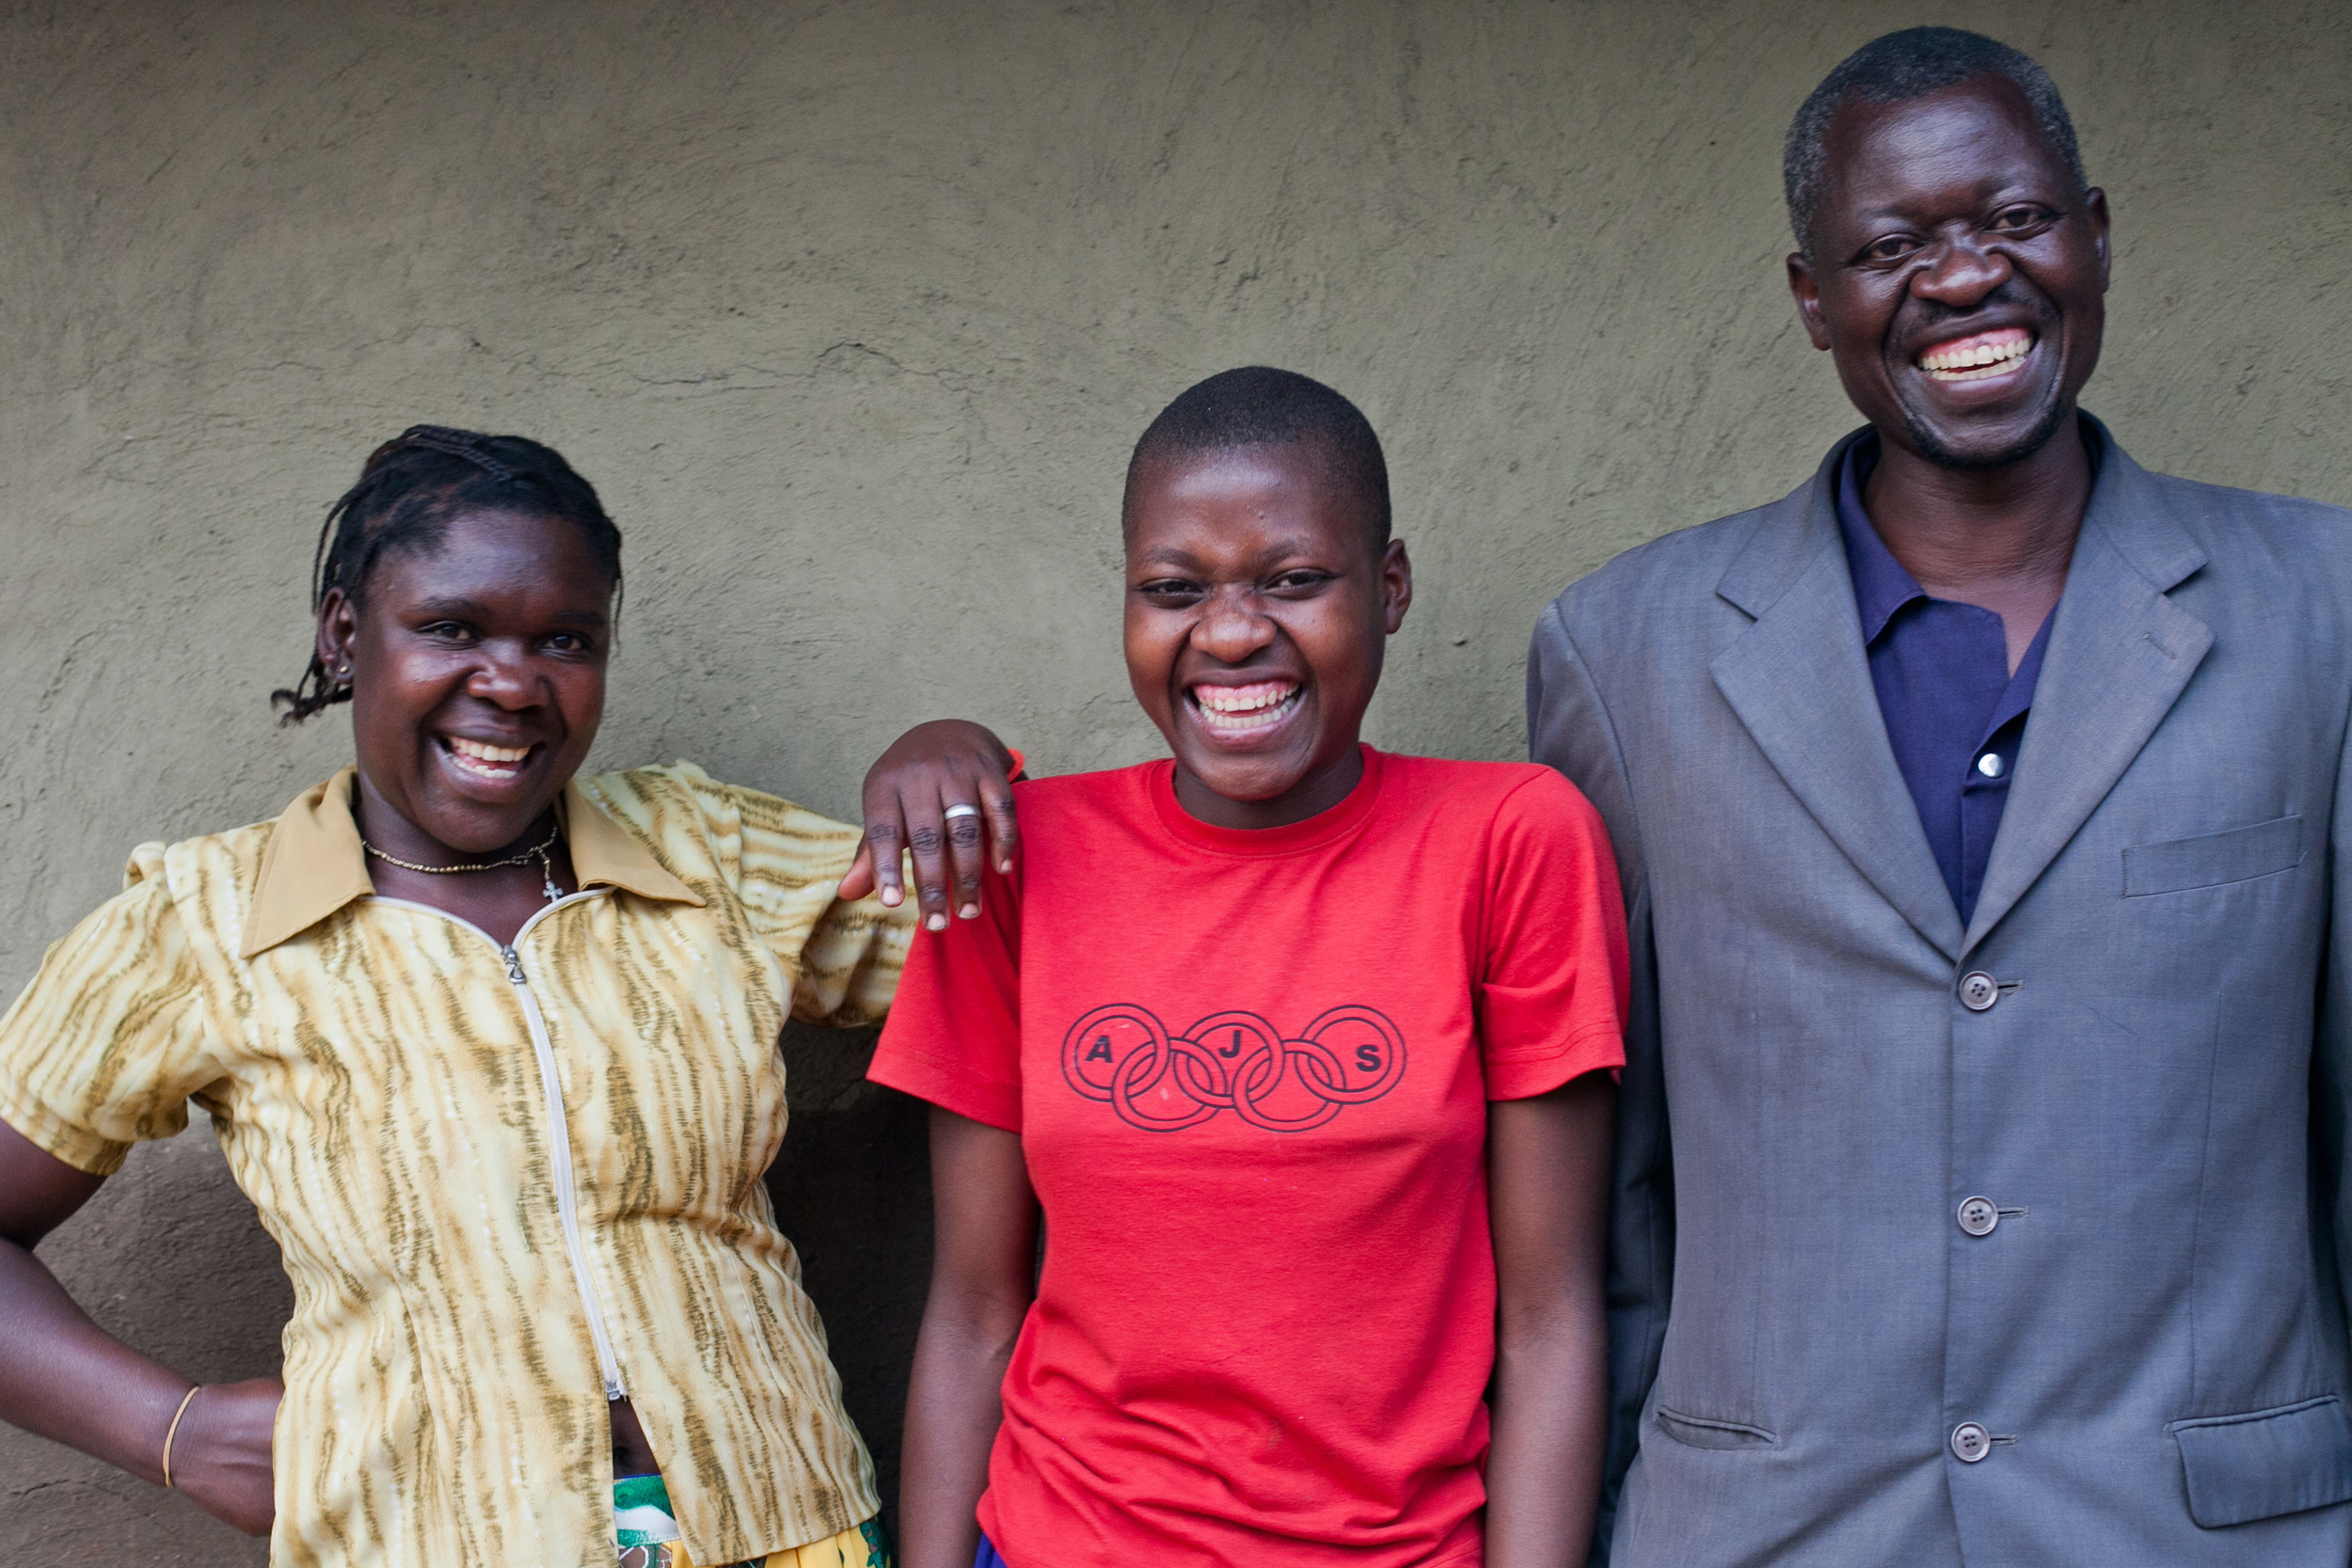 Bess, center, is in sixth grade. Here, she poses with her step-mom and dad outside their home.